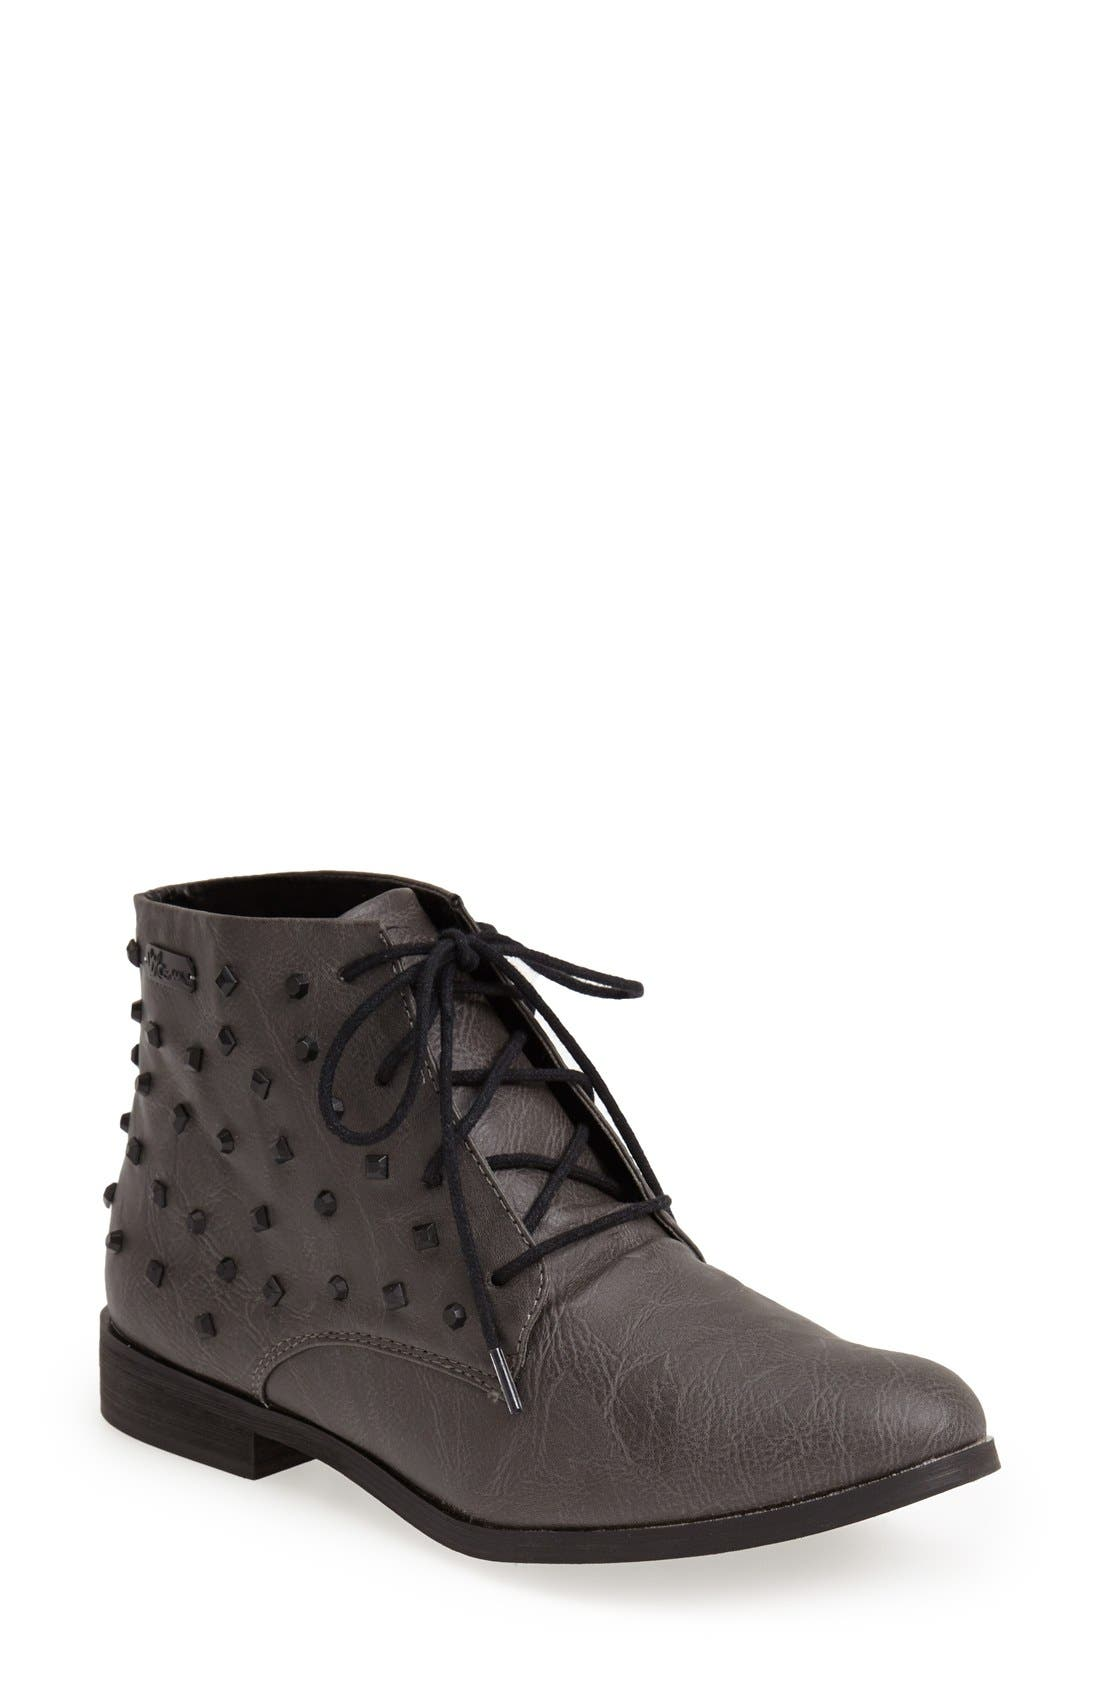 Main Image - Volcom 'Exhibition' Lace-Up Bootie (Women)